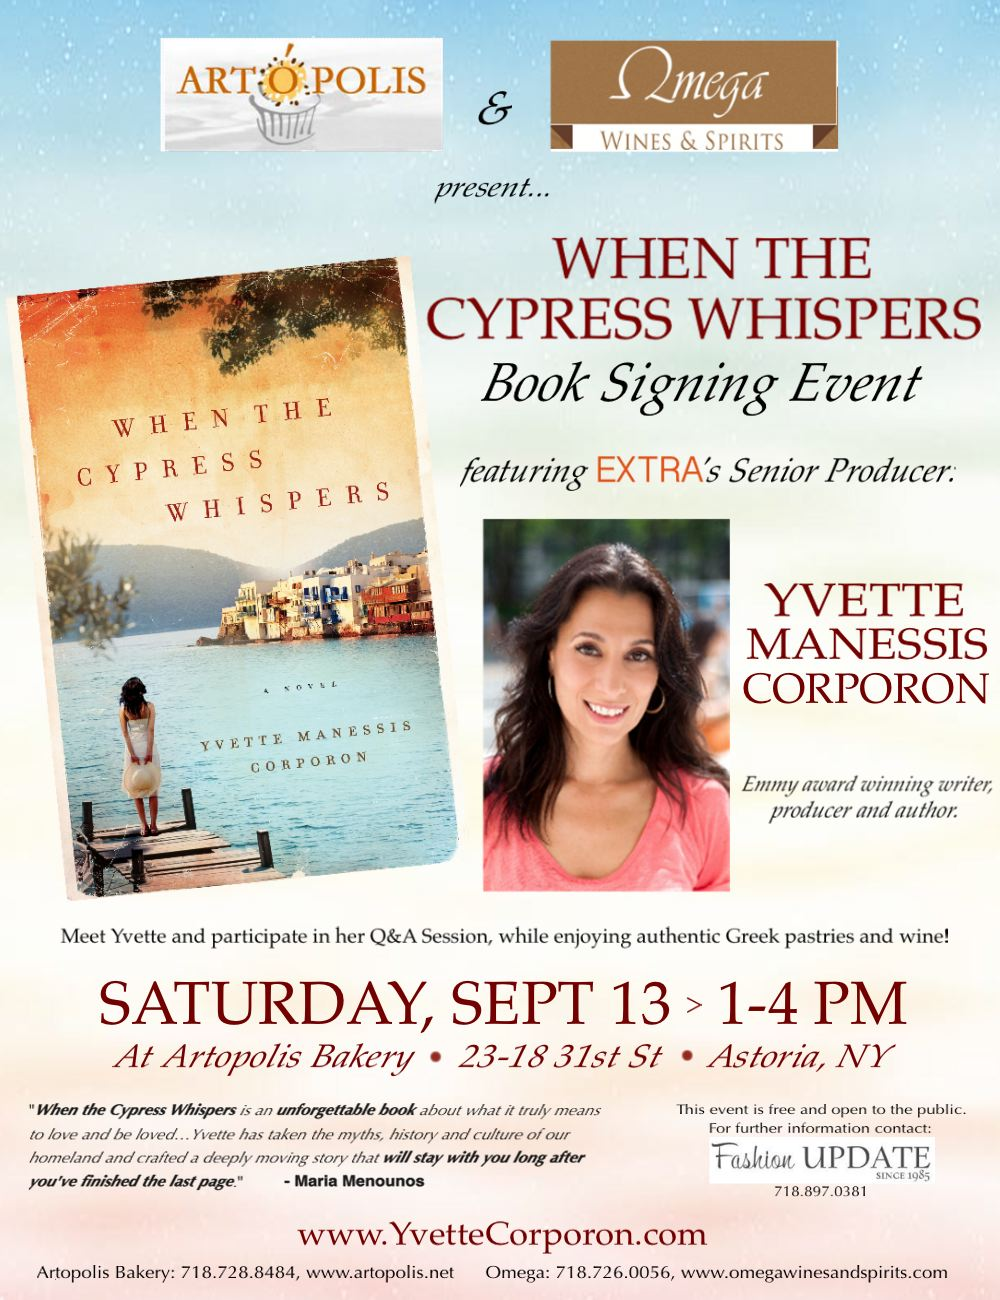 Daniella Blechner- Latest News and Events